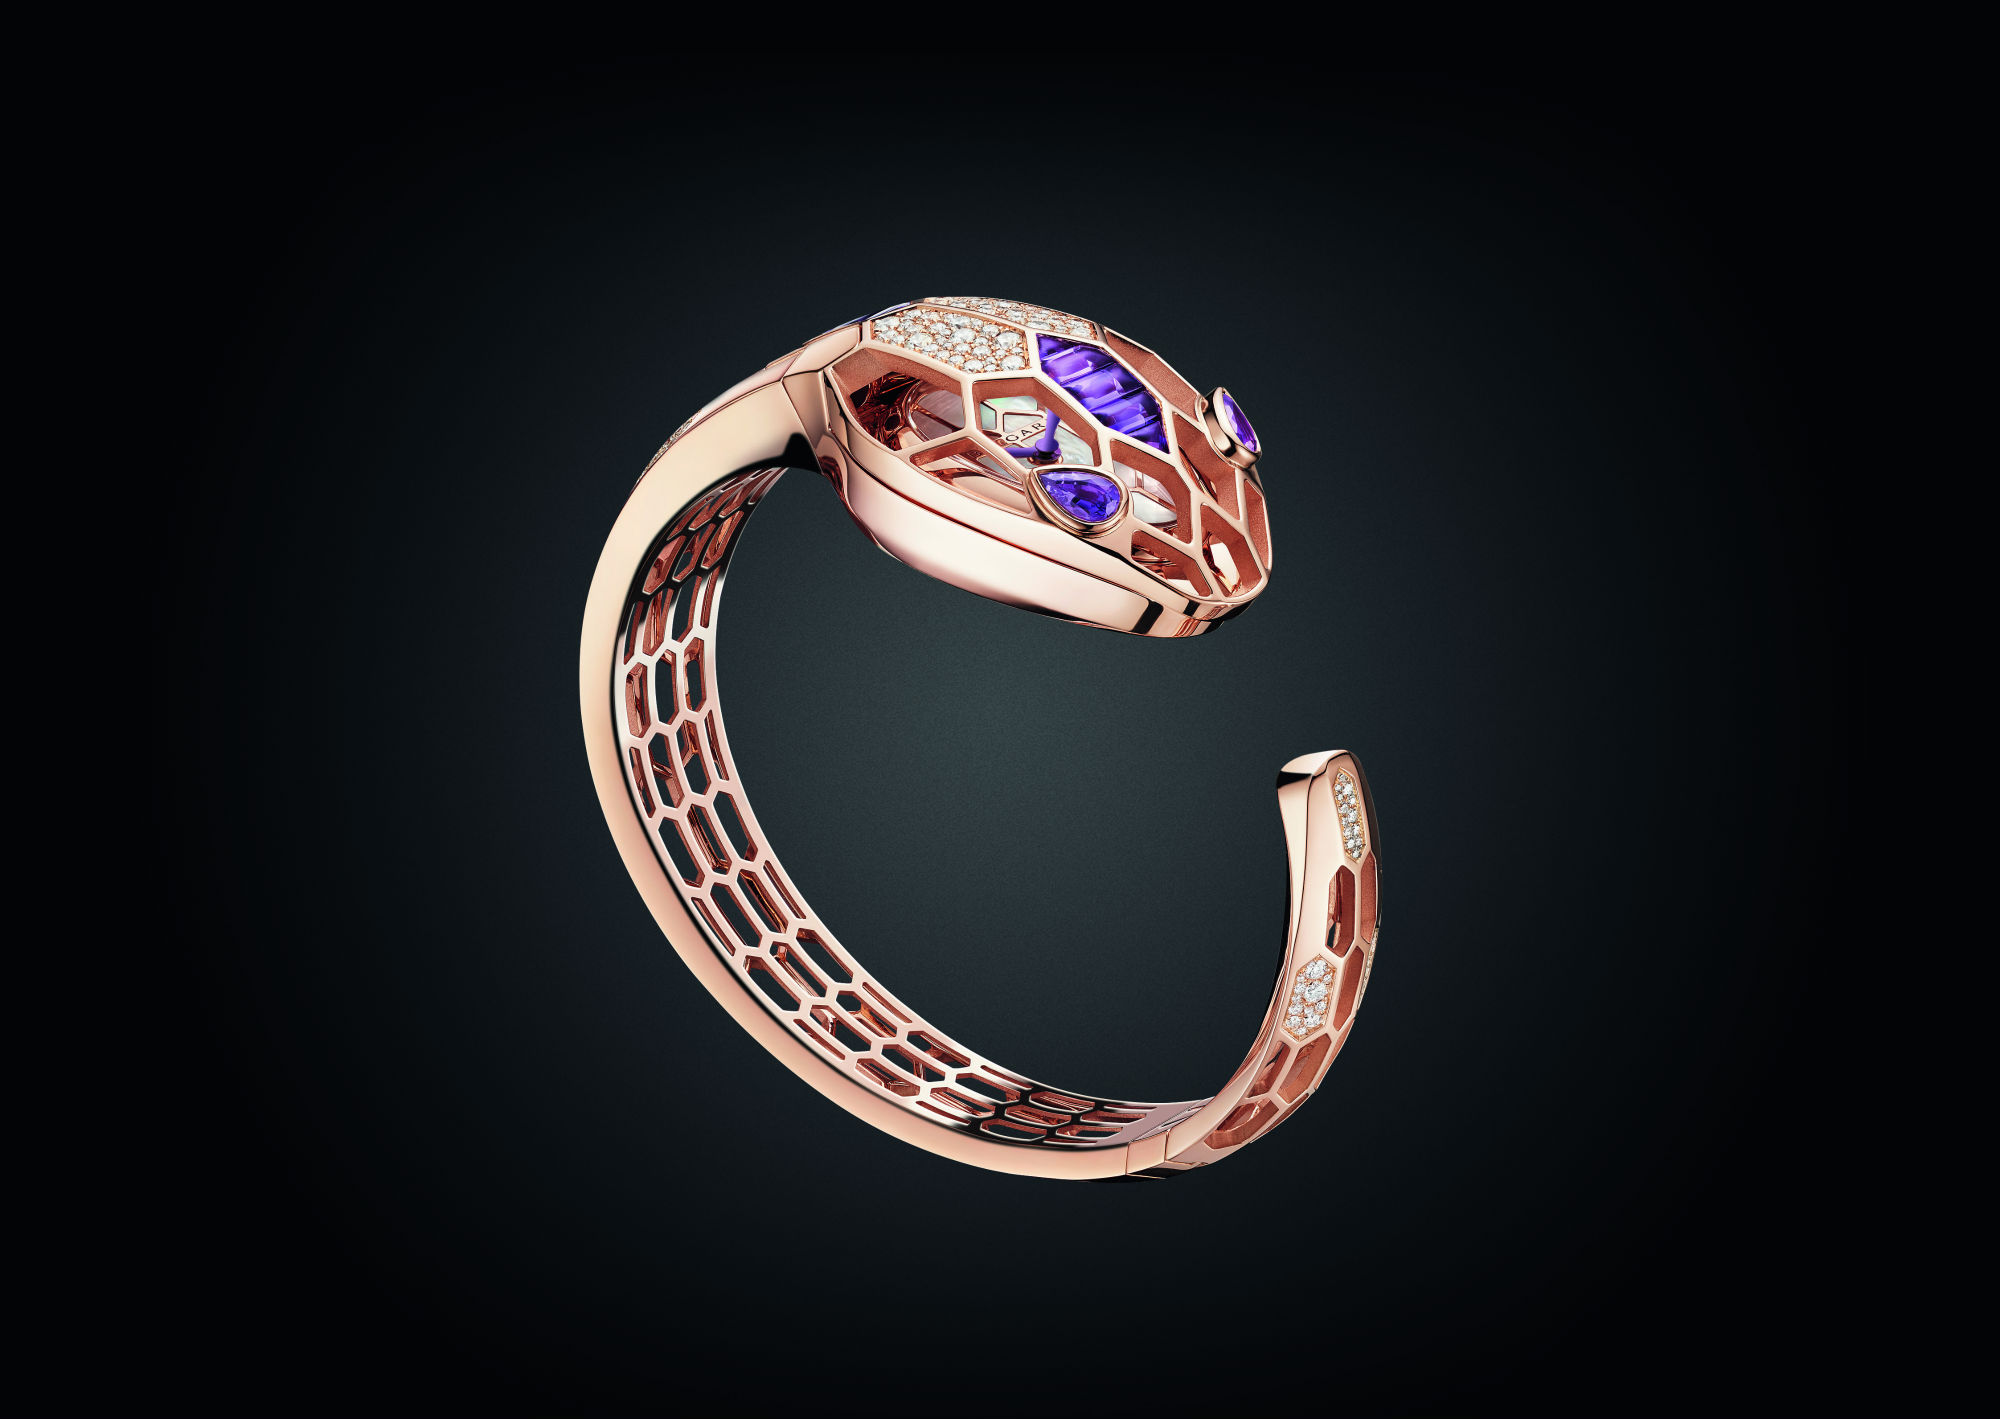 The snake-like designs which are now iconic for Bvlgari were initially inspired by Ancient Egyptian Queen Cleopatra